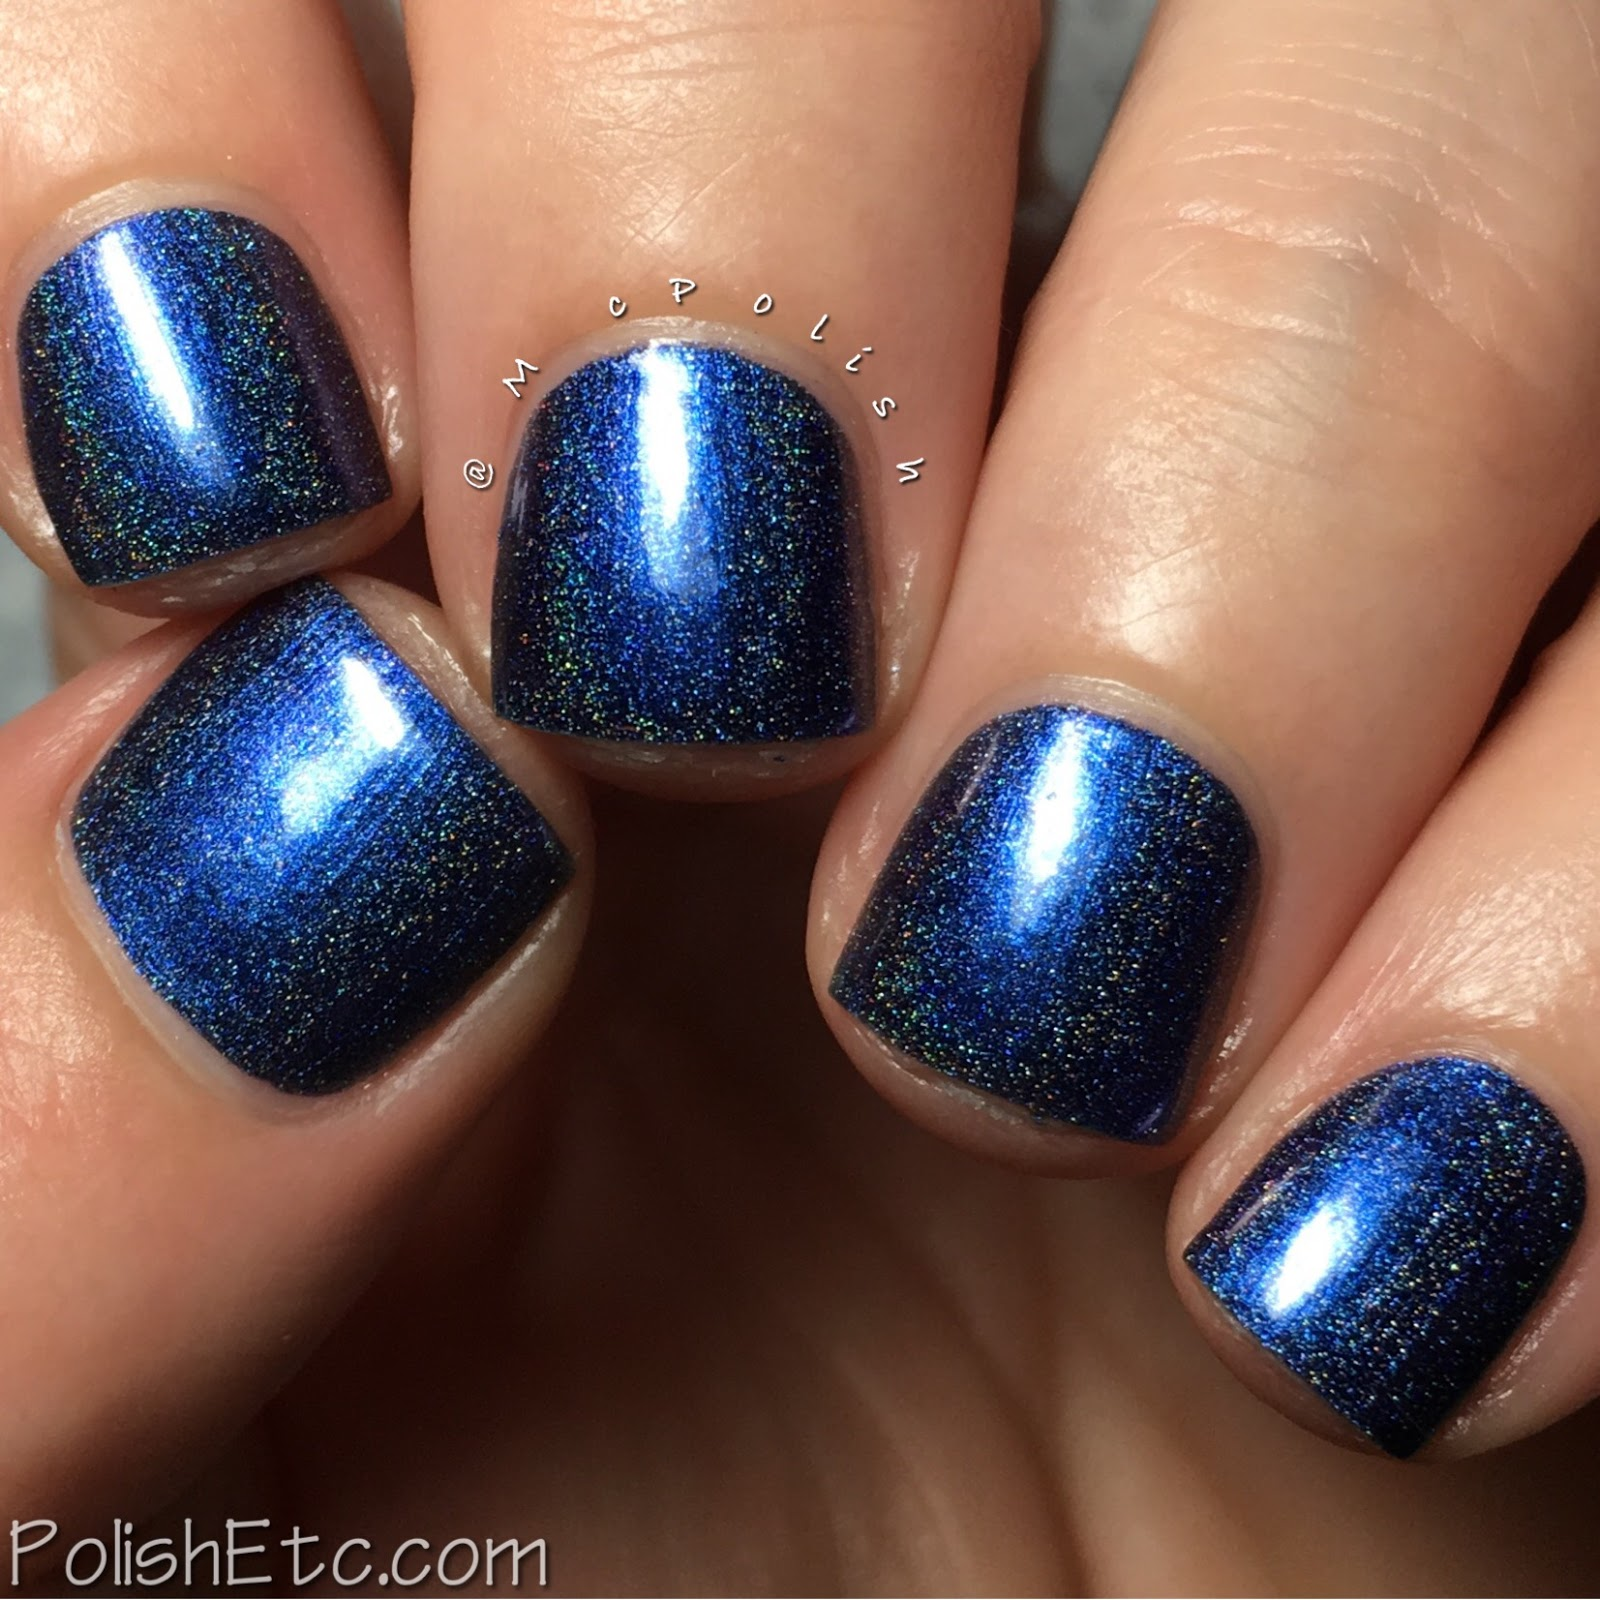 Top Shelf Lacquer - Cocktail Fun Holo'd Collection - McPolish - Tequila Mockingbird (Holo'd)